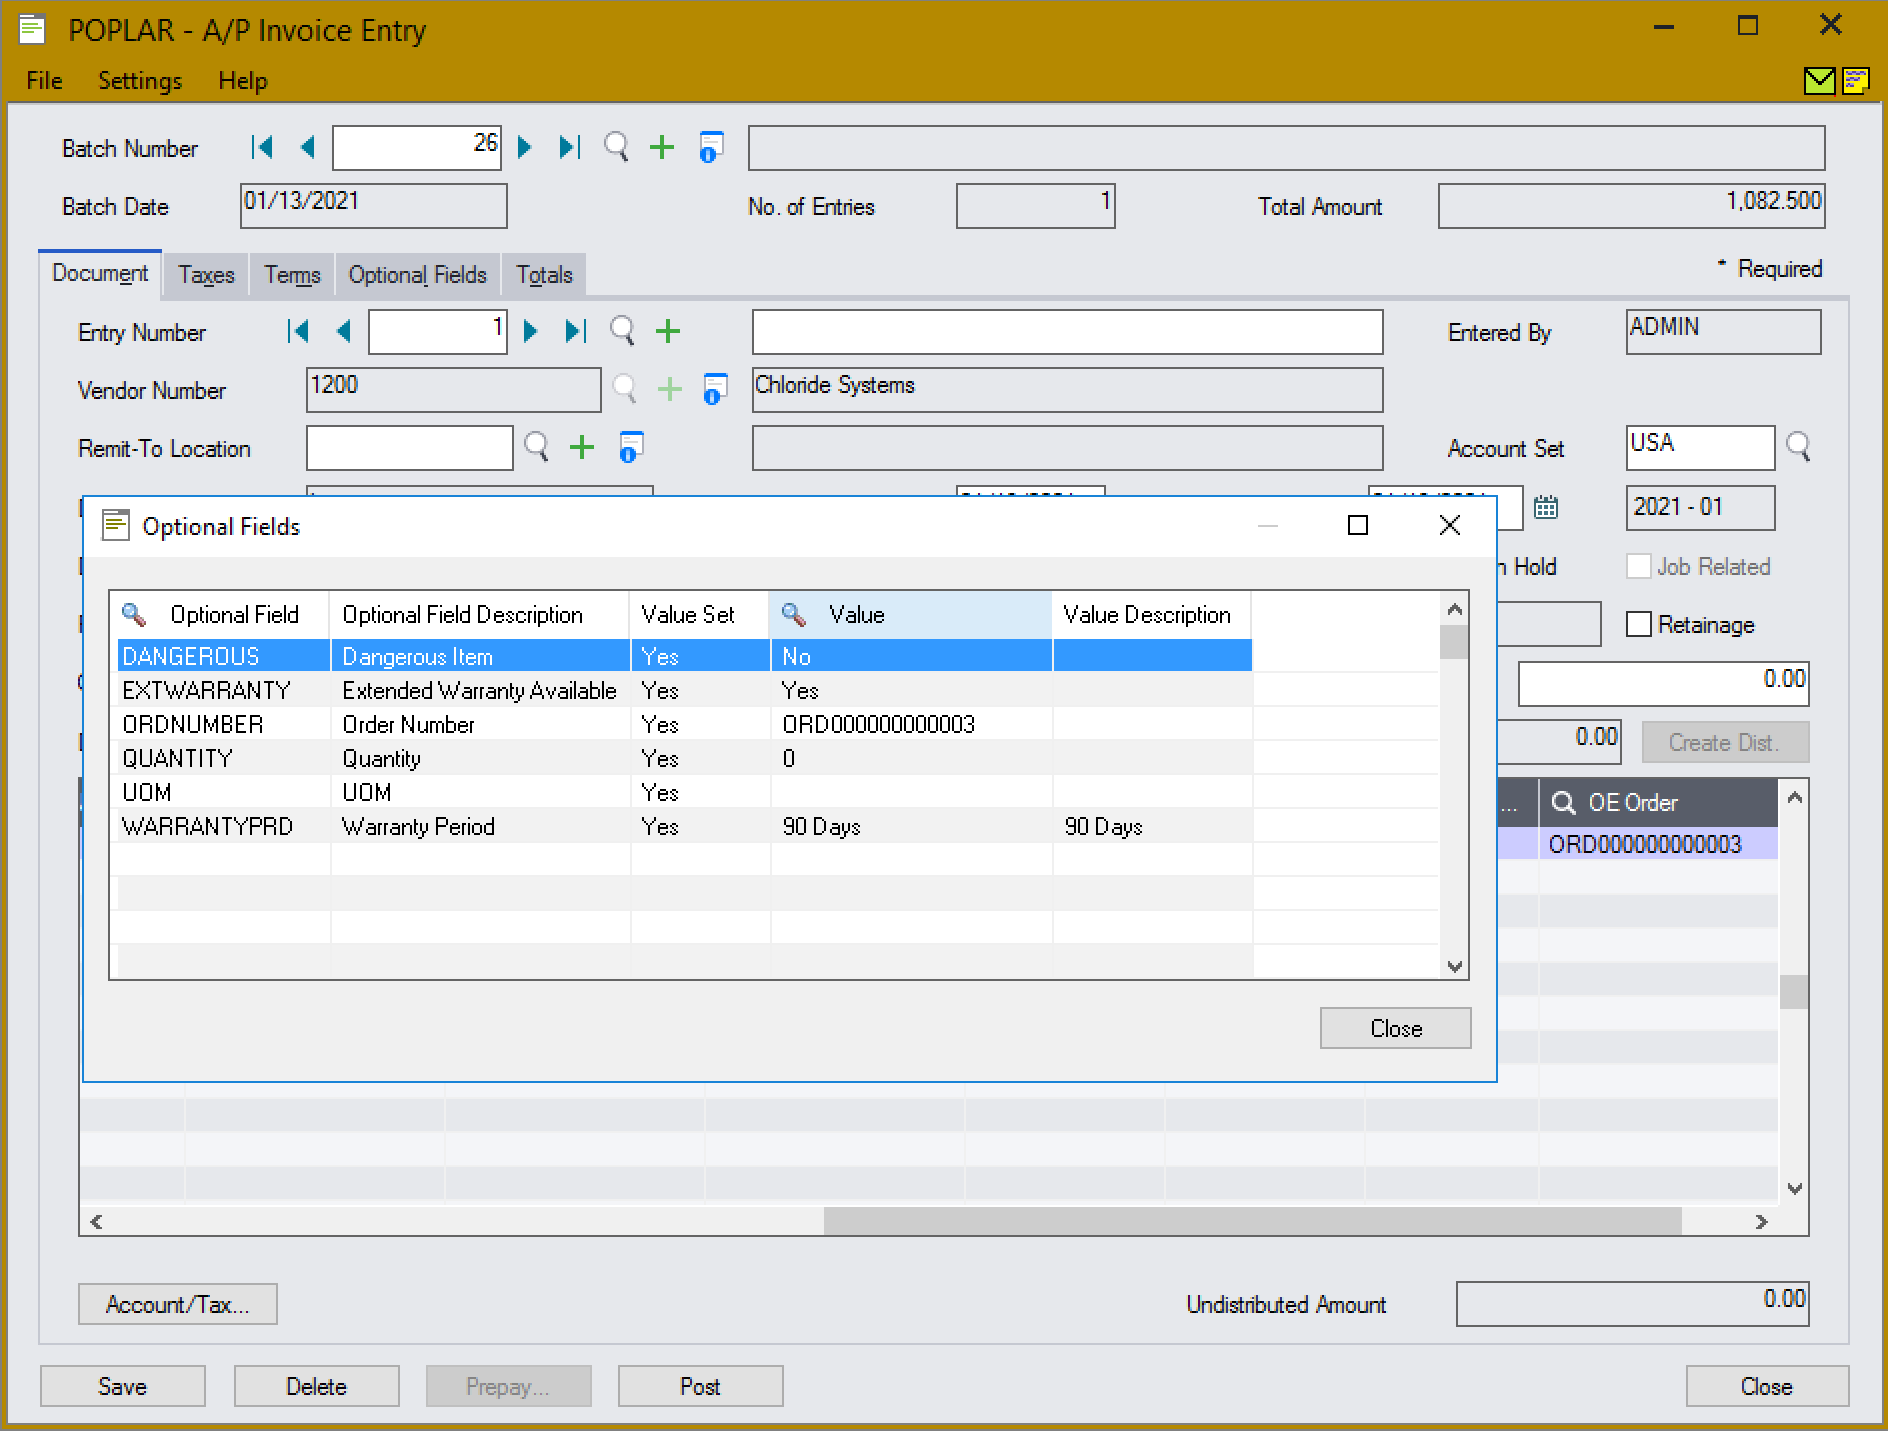 The optional field is set automatically as the values in the column change.